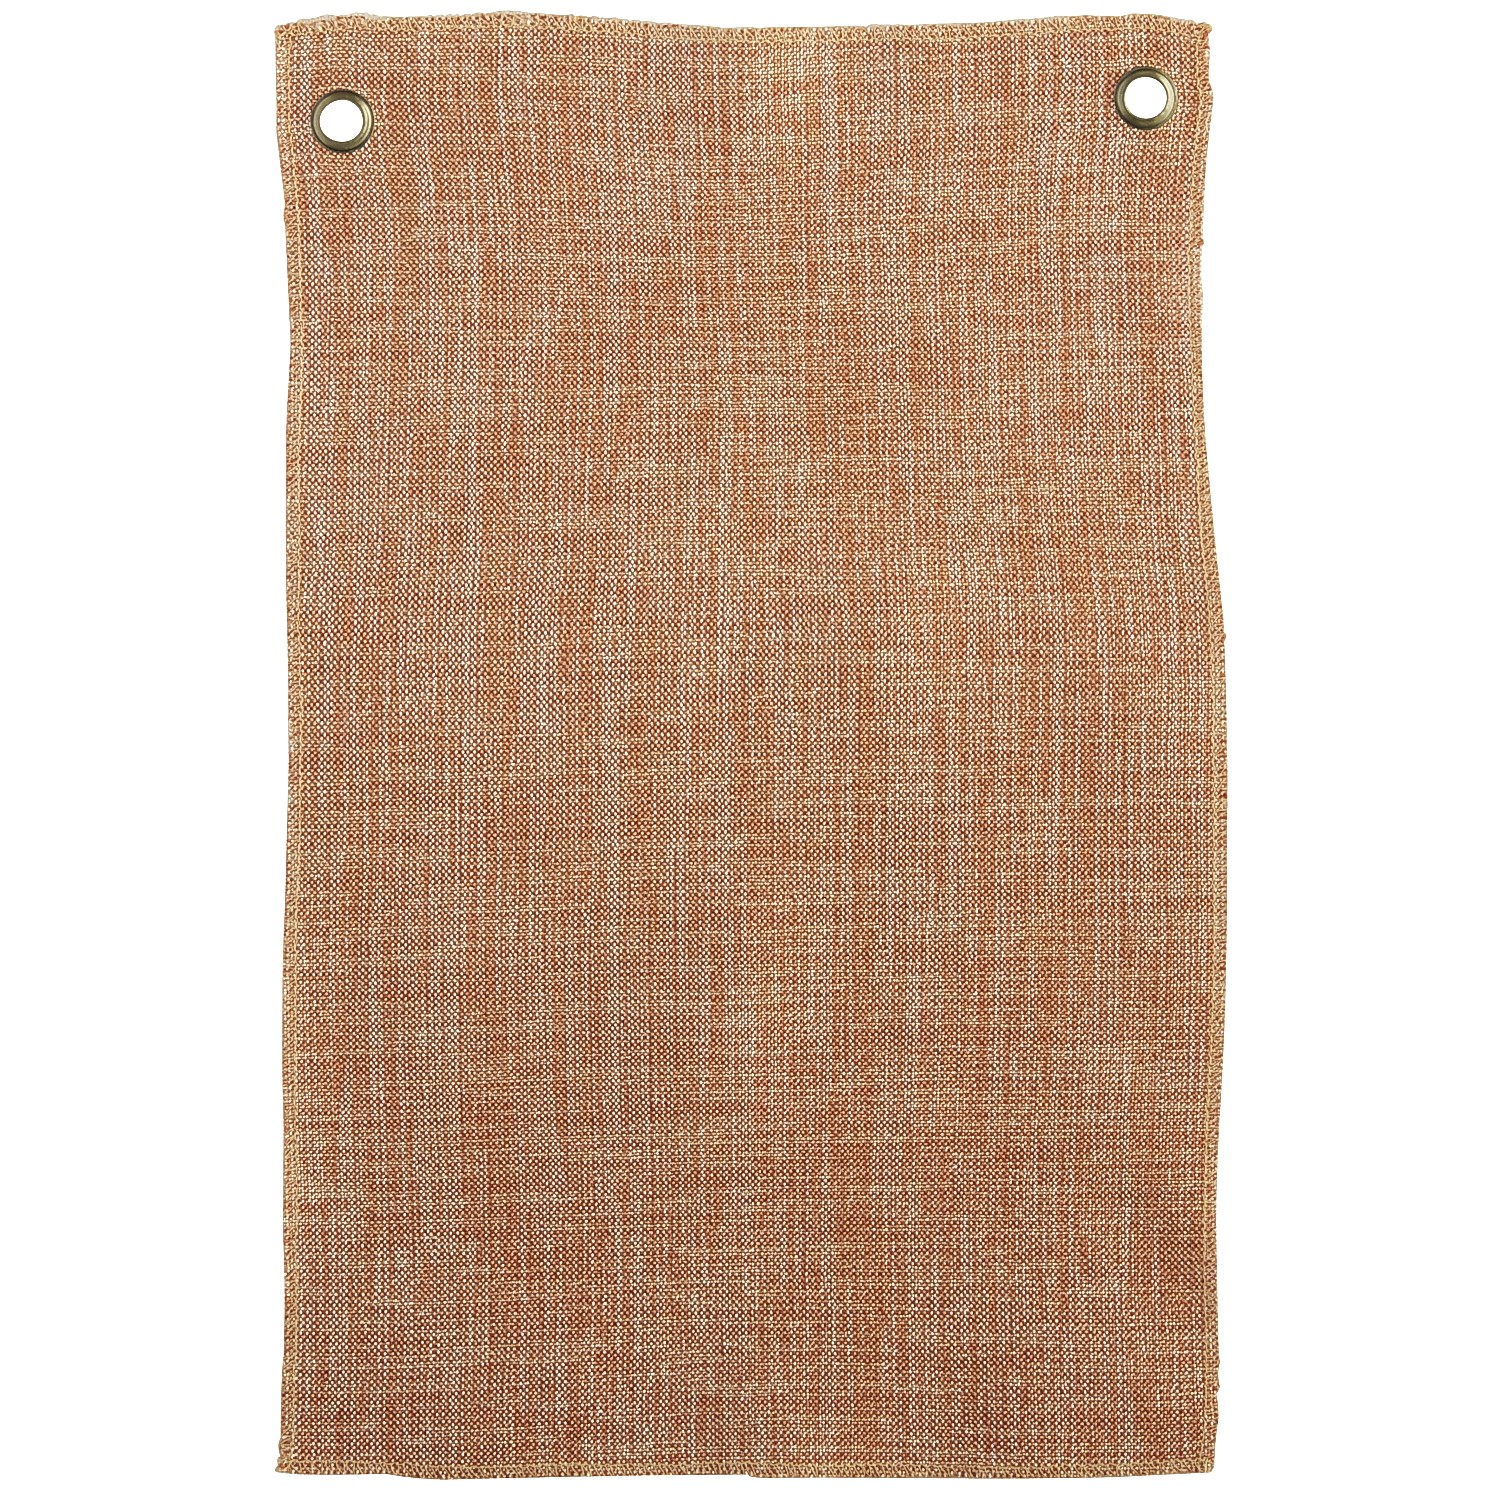 Shimmer Curtain Swatch - Copper